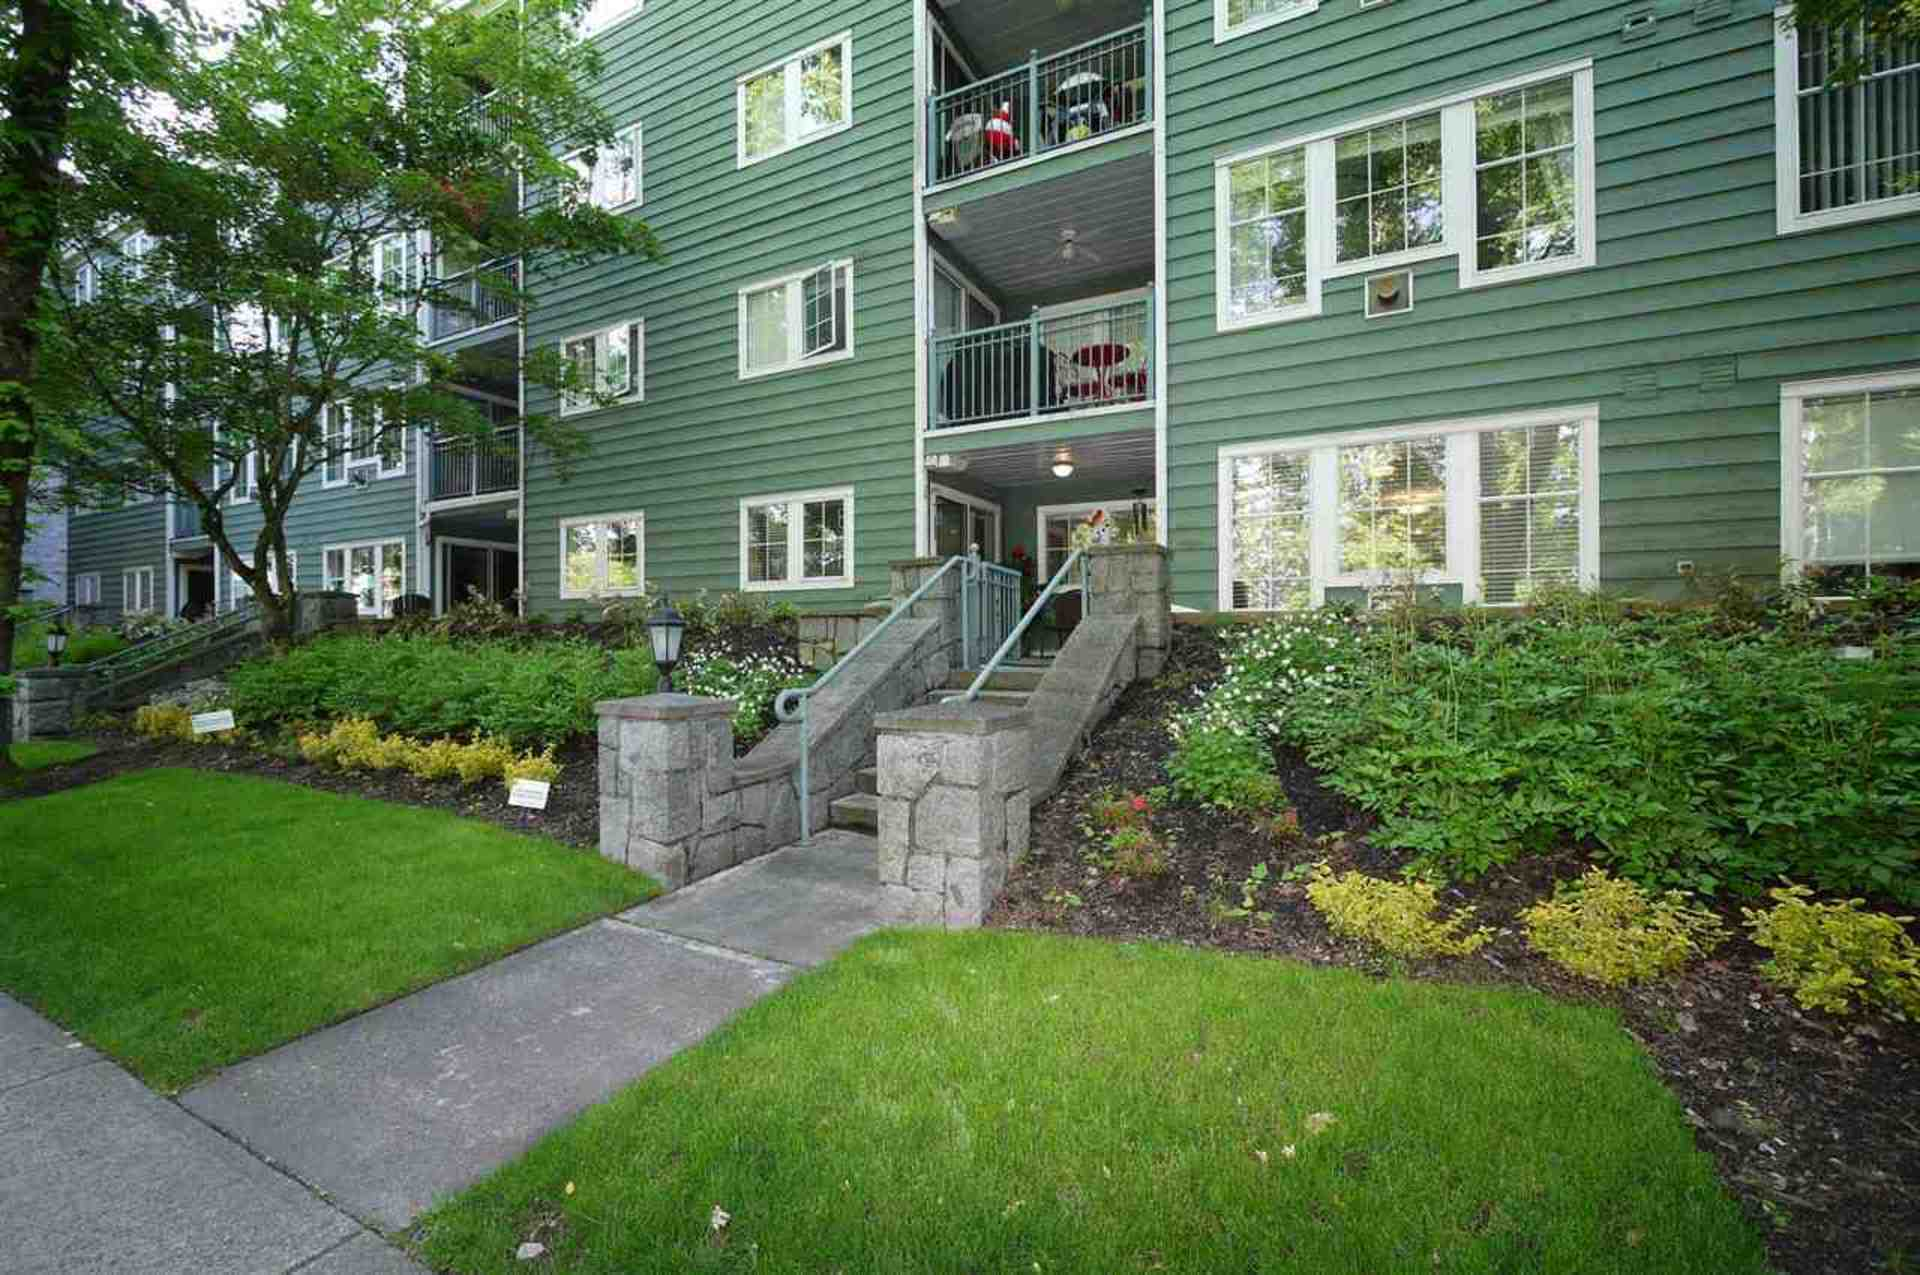 1199-westwood-street-north-coquitlam-coquitlam-01 at 105 - 1199 Westwood Street, North Coquitlam, Coquitlam